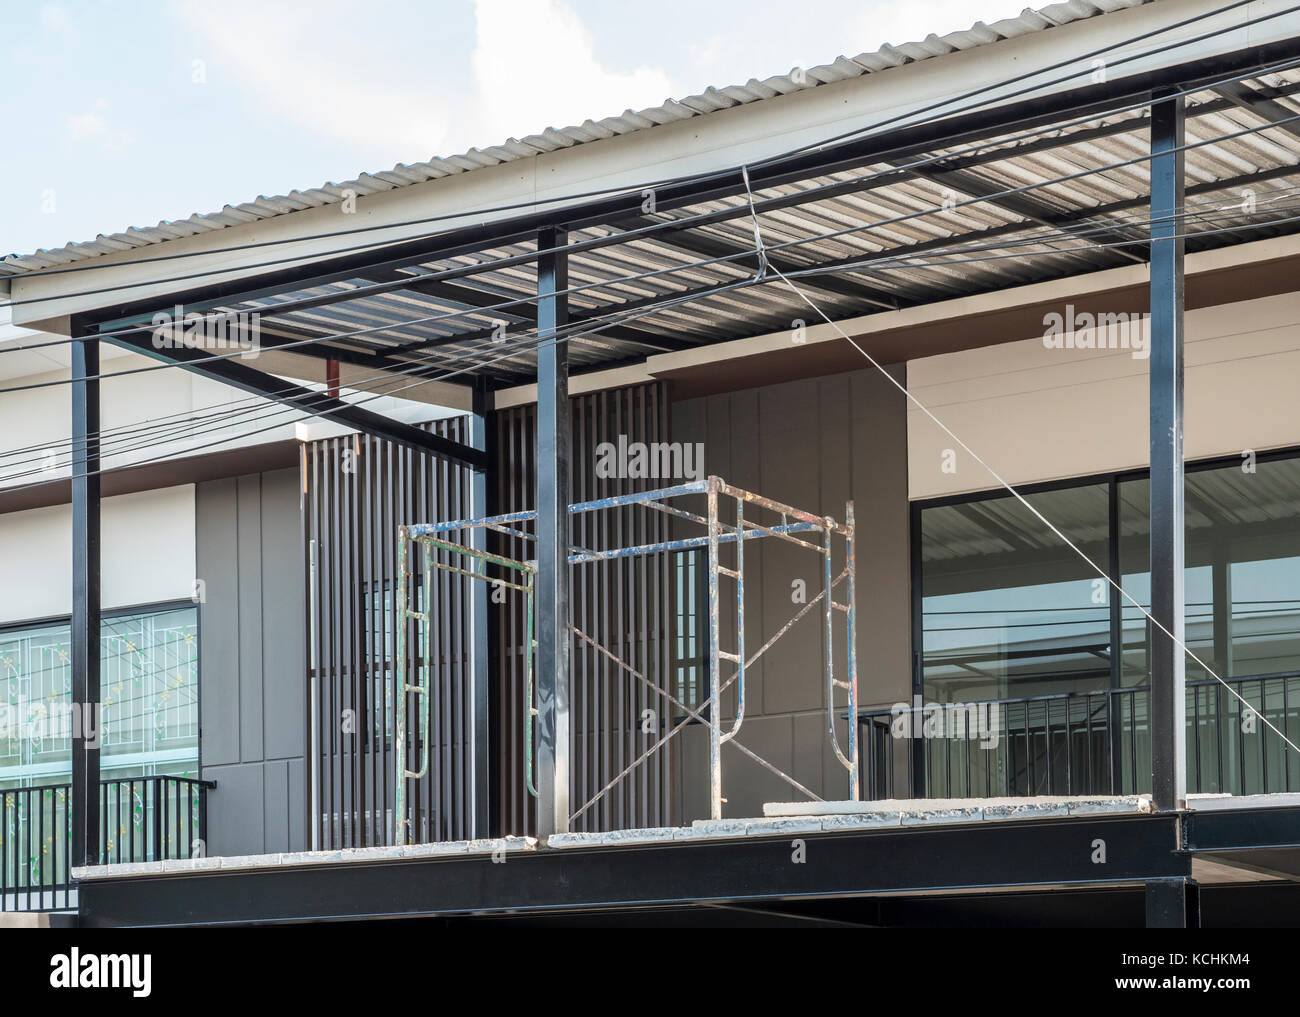 Small Metal Scaffolding On The Second Floor Of The Unfinished Modern Stock Photo Alamy